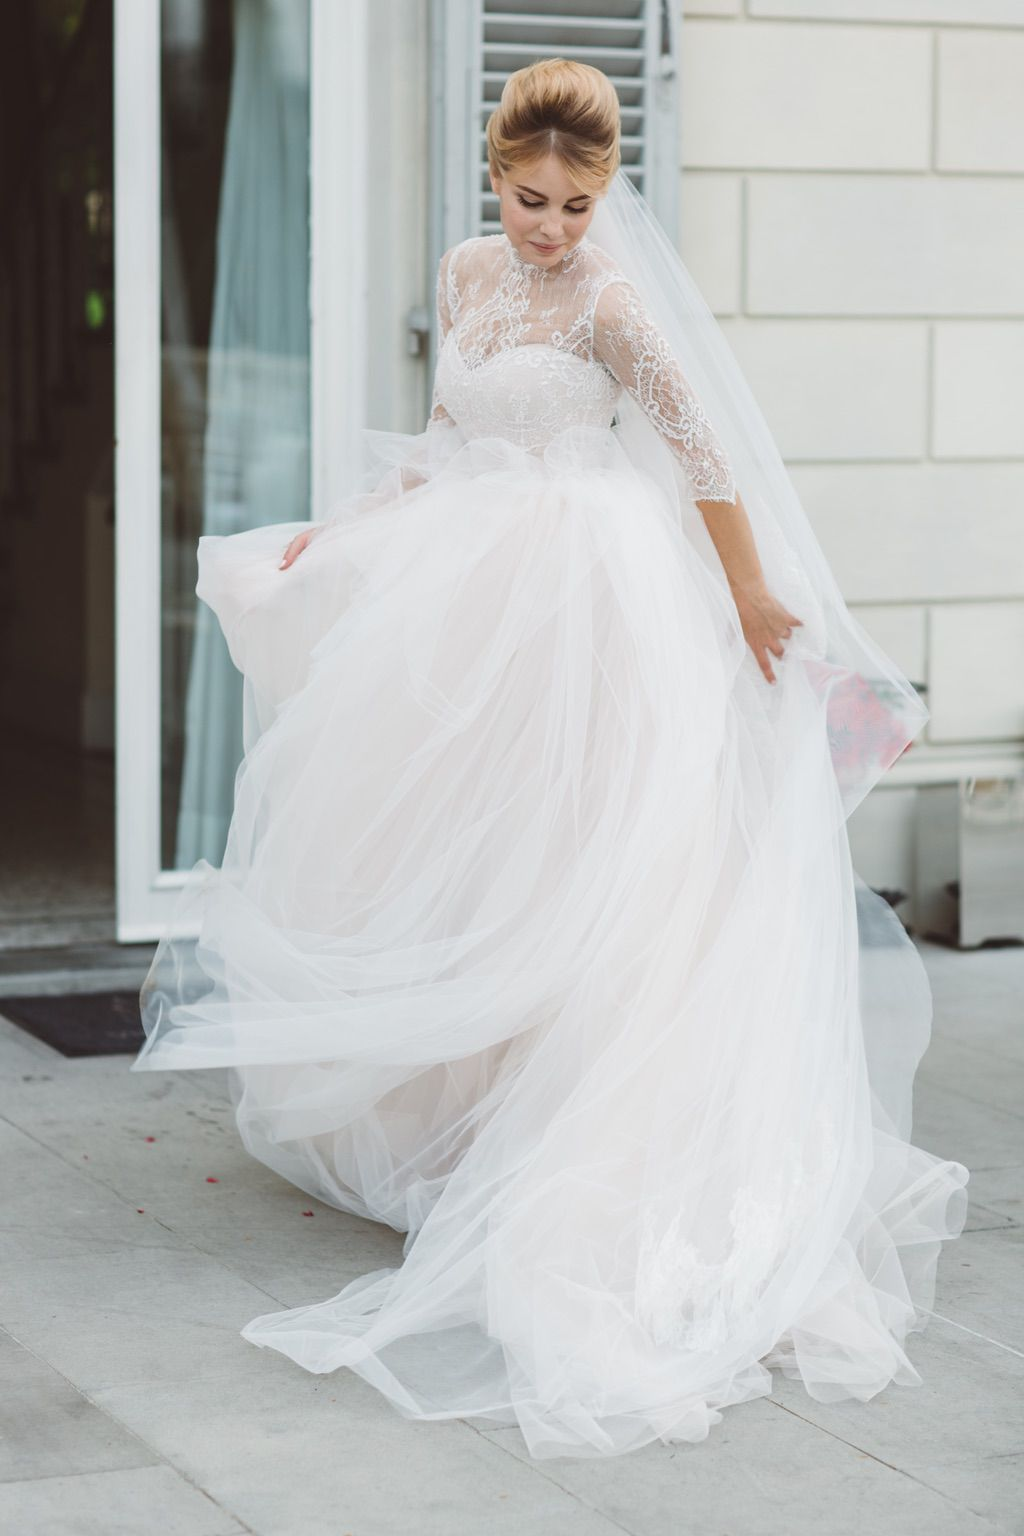 bridal tulle and lace ball gown wedding dress real wedding in Firenze